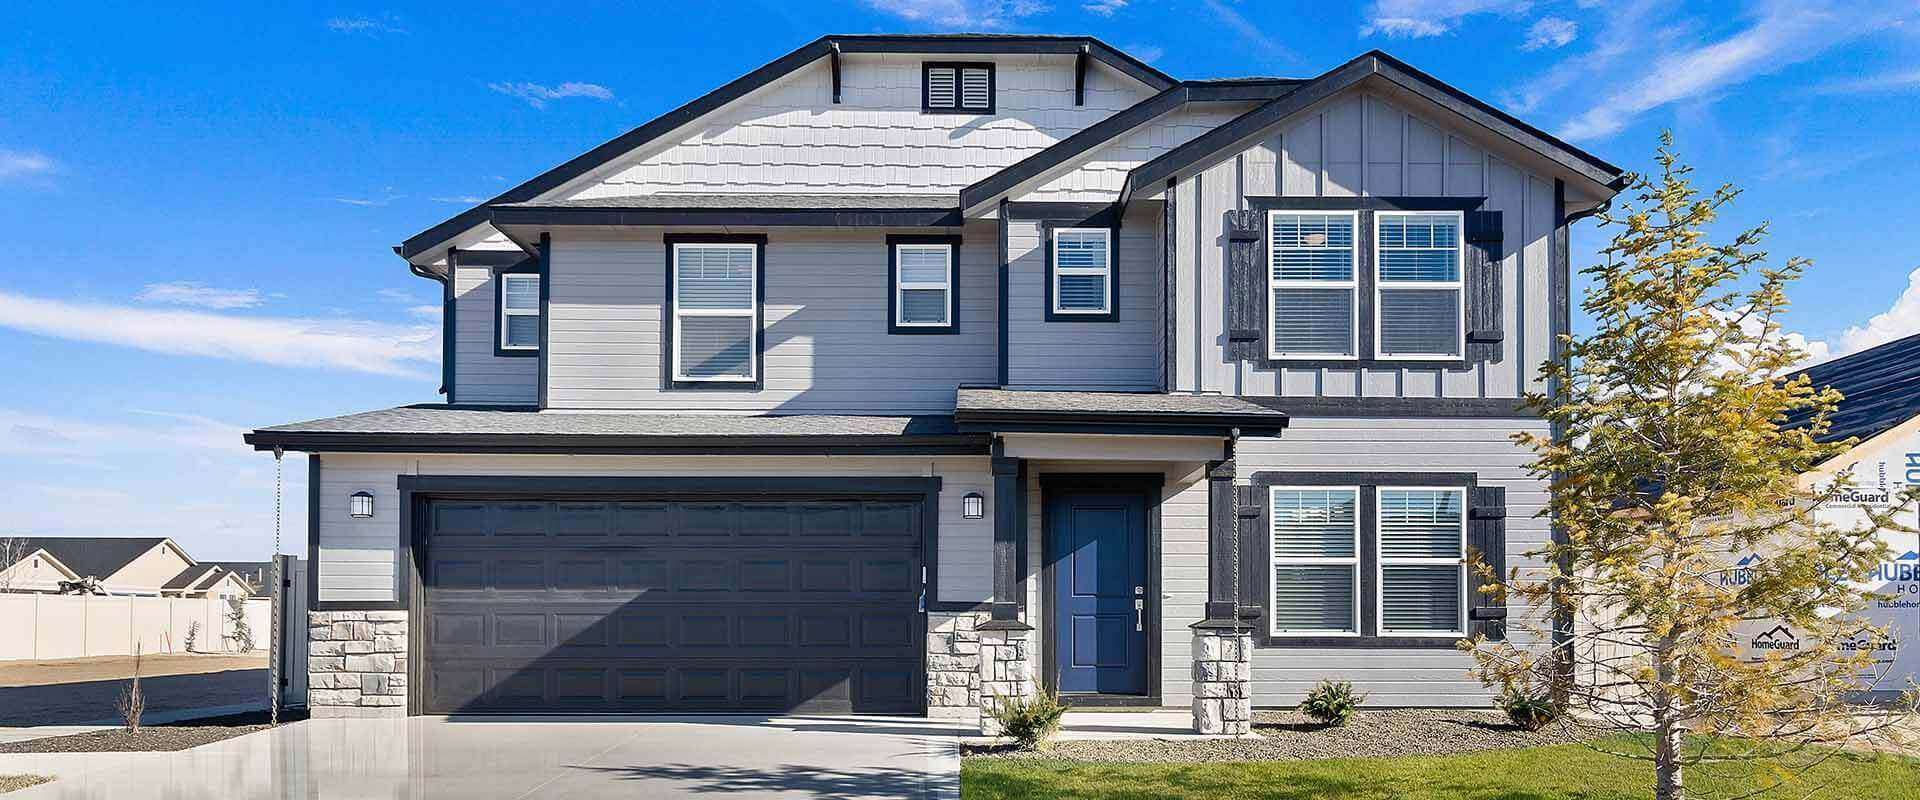 Spruce_Hubble_Homes_New_Homes_Boise_Front of Home.jpg